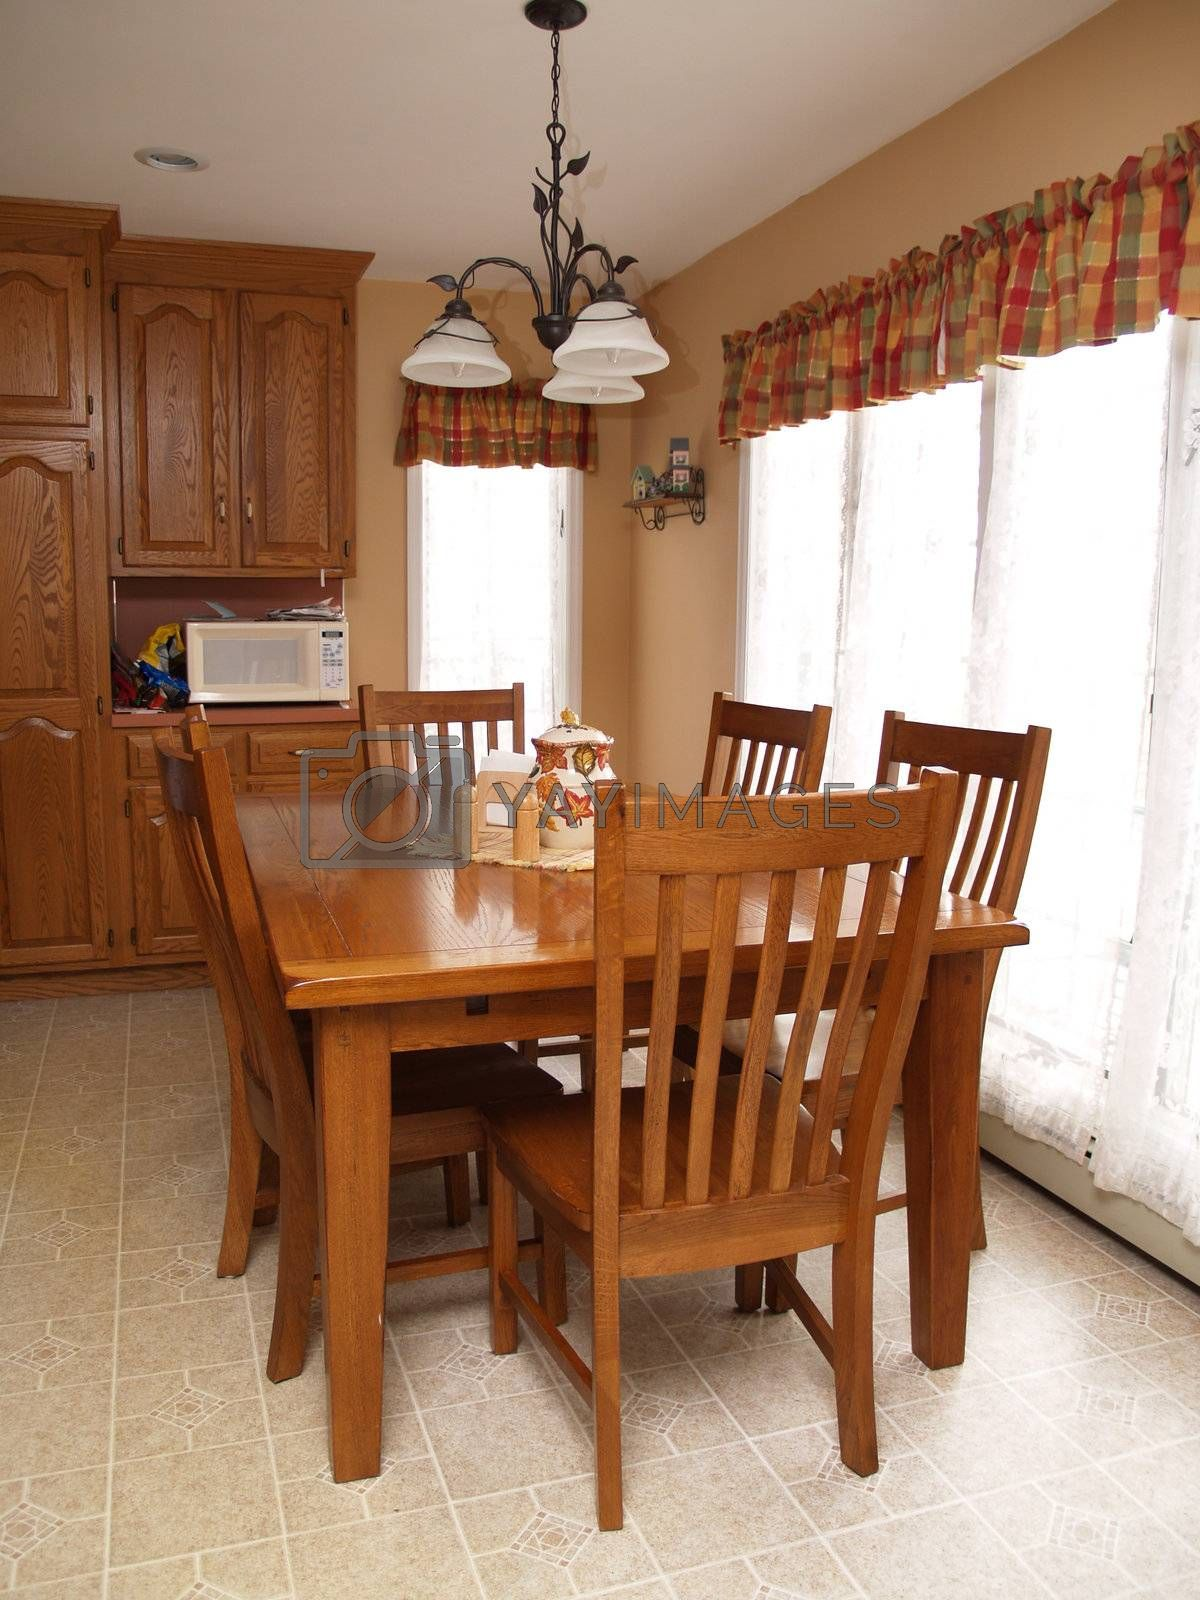 wood table and chairs in a modern kitchen